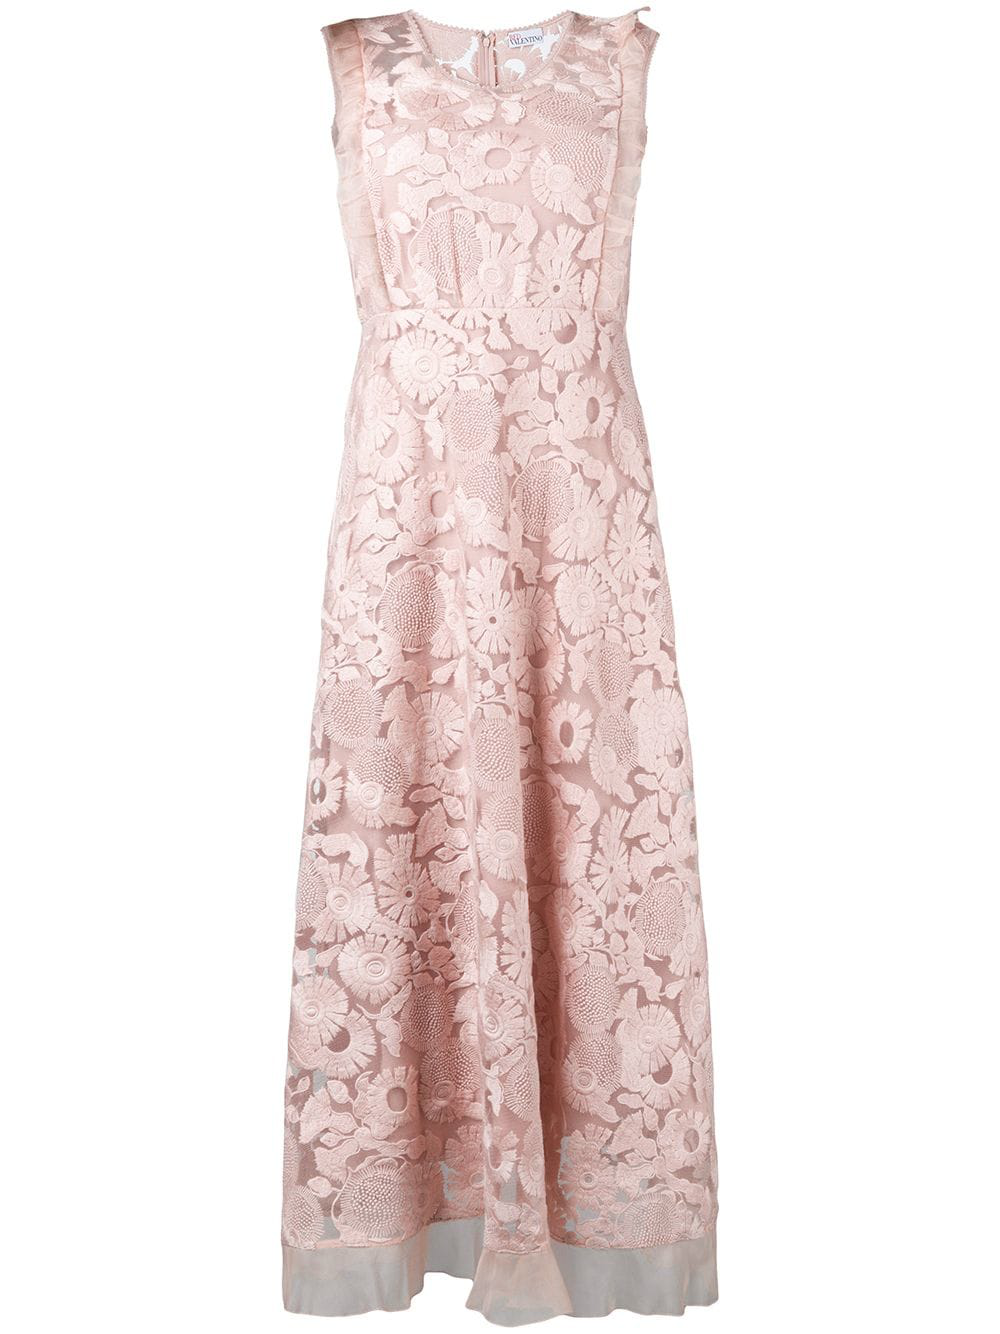 38a2dd628931c Red Valentino Floral Lace Dress - Pink   ModeSens